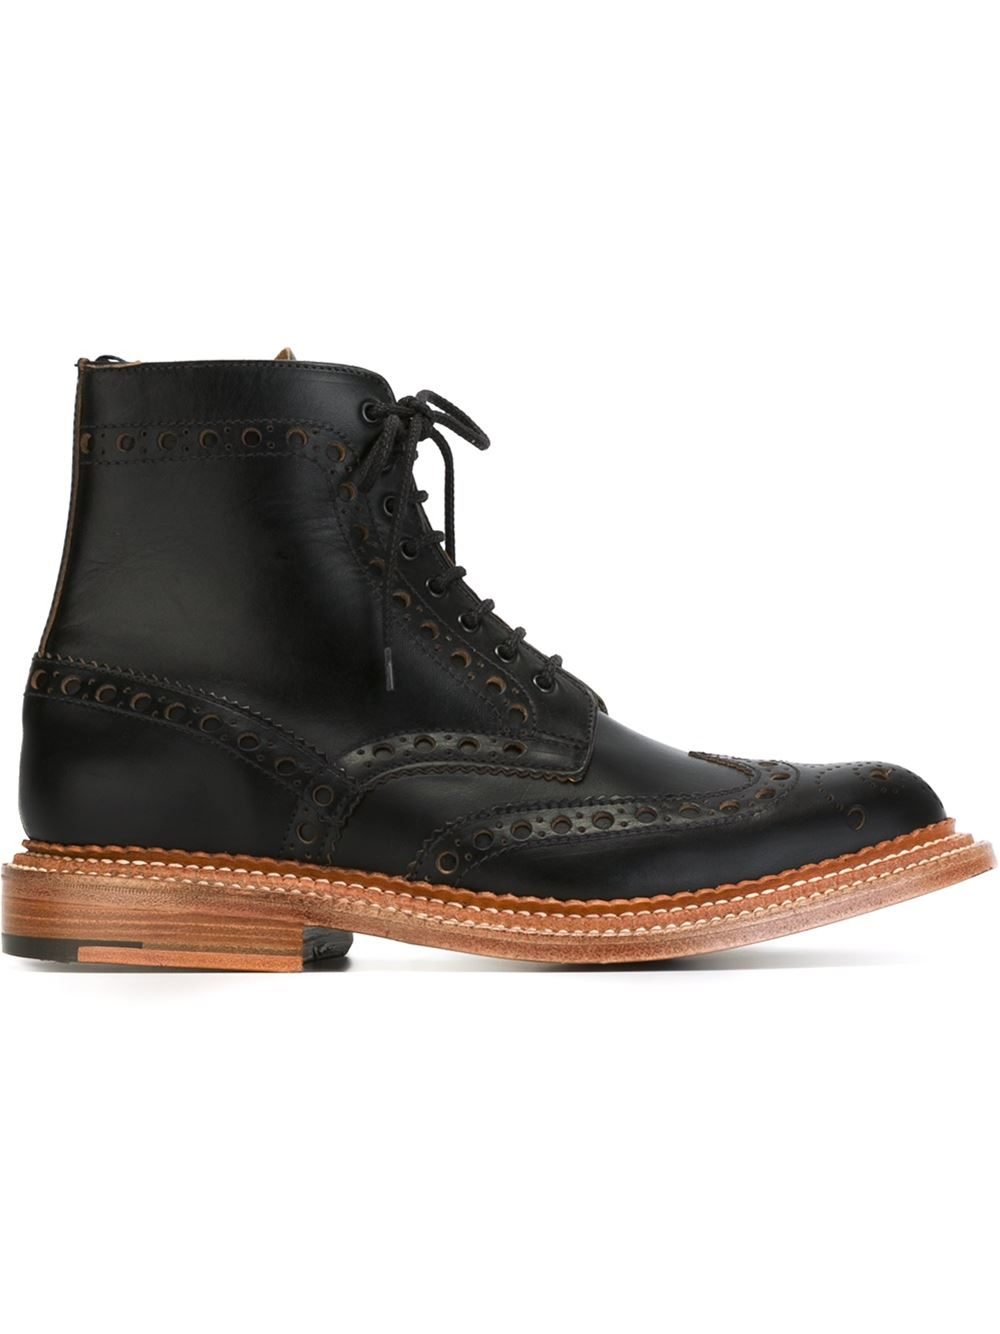 Lyst Foot The Coacher Brogue Detailing Boots In Black